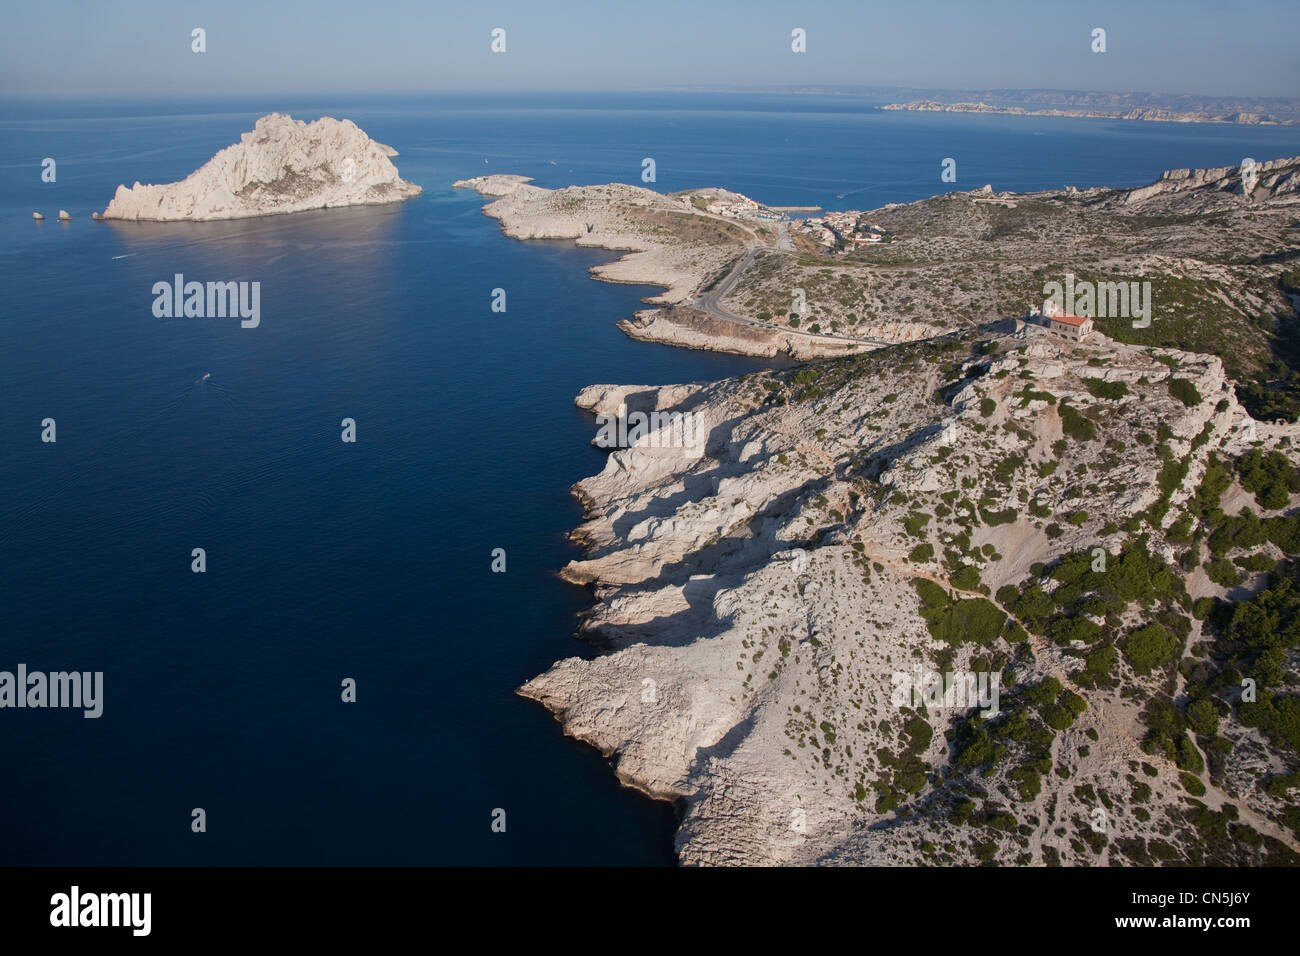 France, Bouches du Rhone, Callelongue Semaphore and Ile Maire (aerial view) Stock Photo